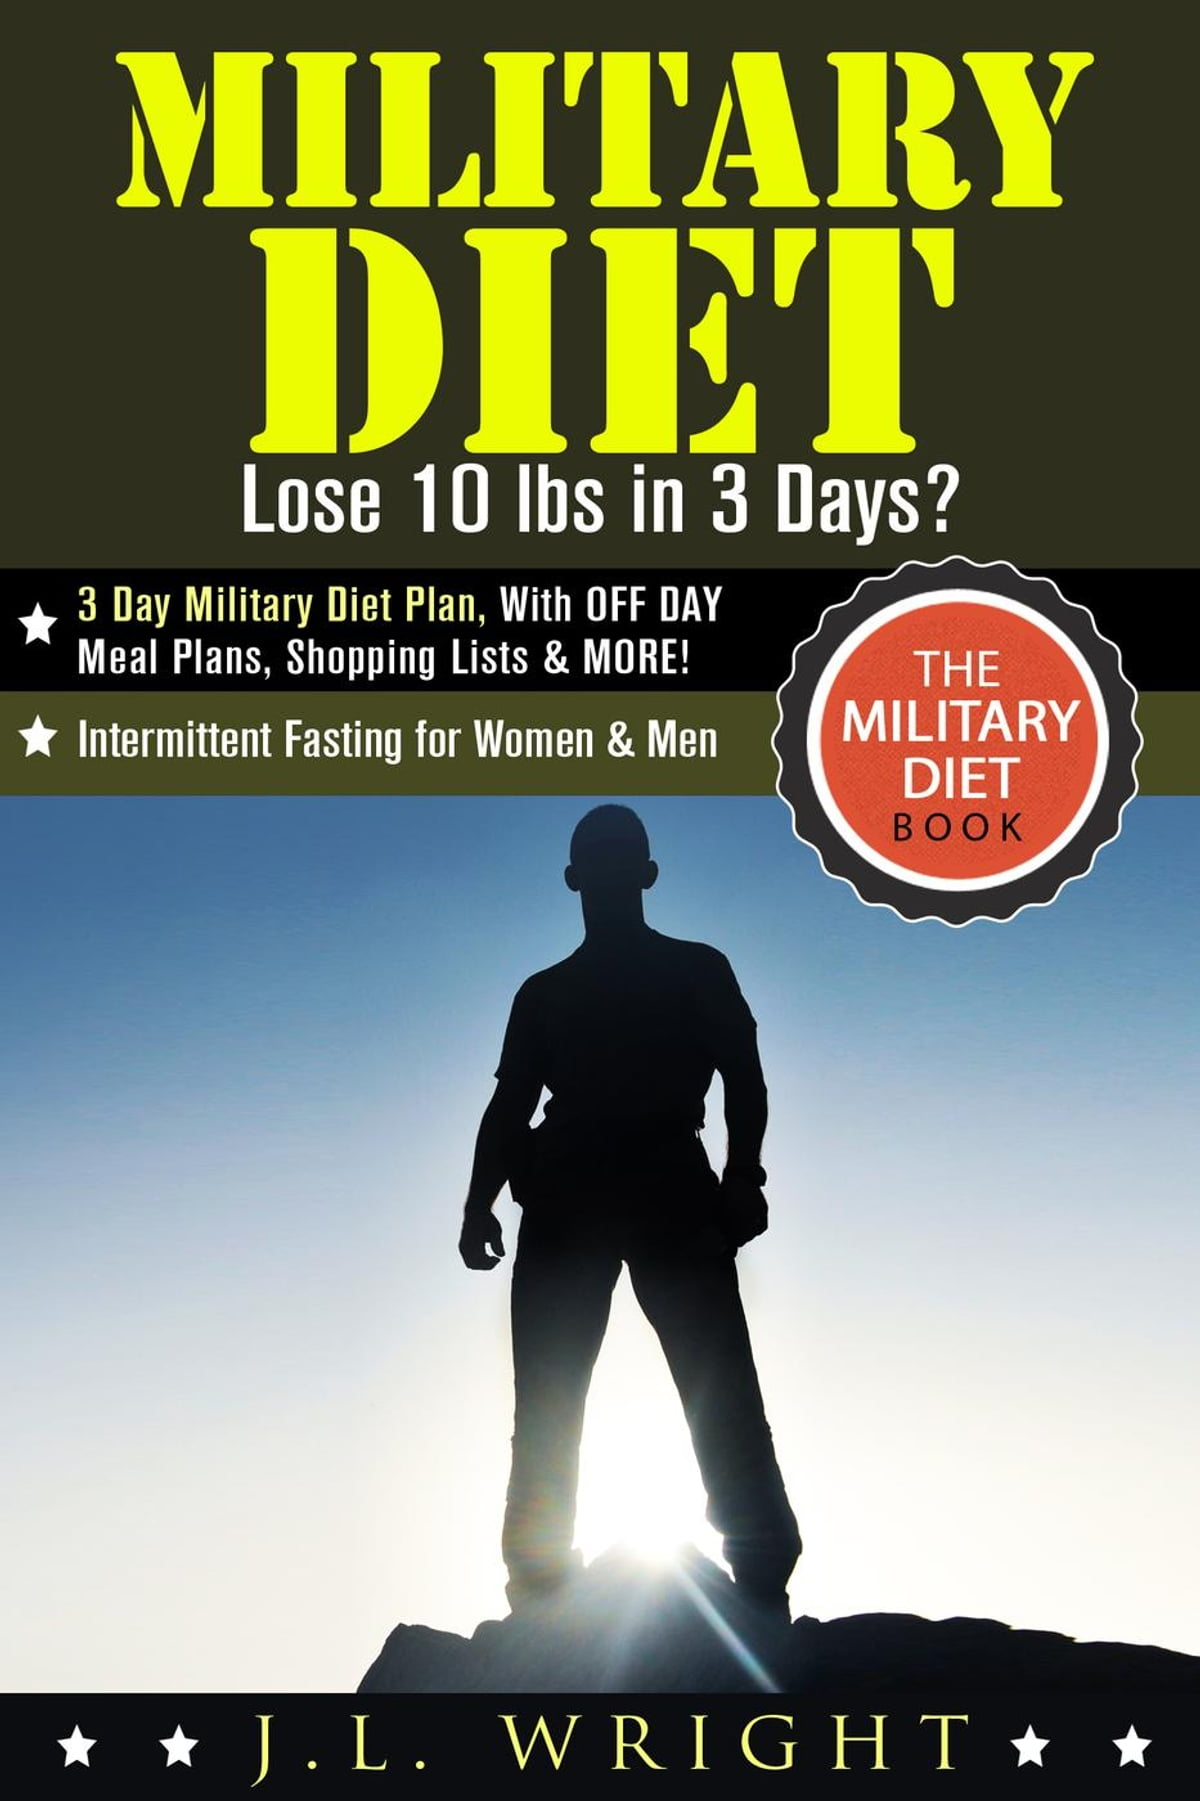 4 Day Diet Plans: Military Diet: Lose 10 Lbs In 3 Days? 3 Day Military Diet